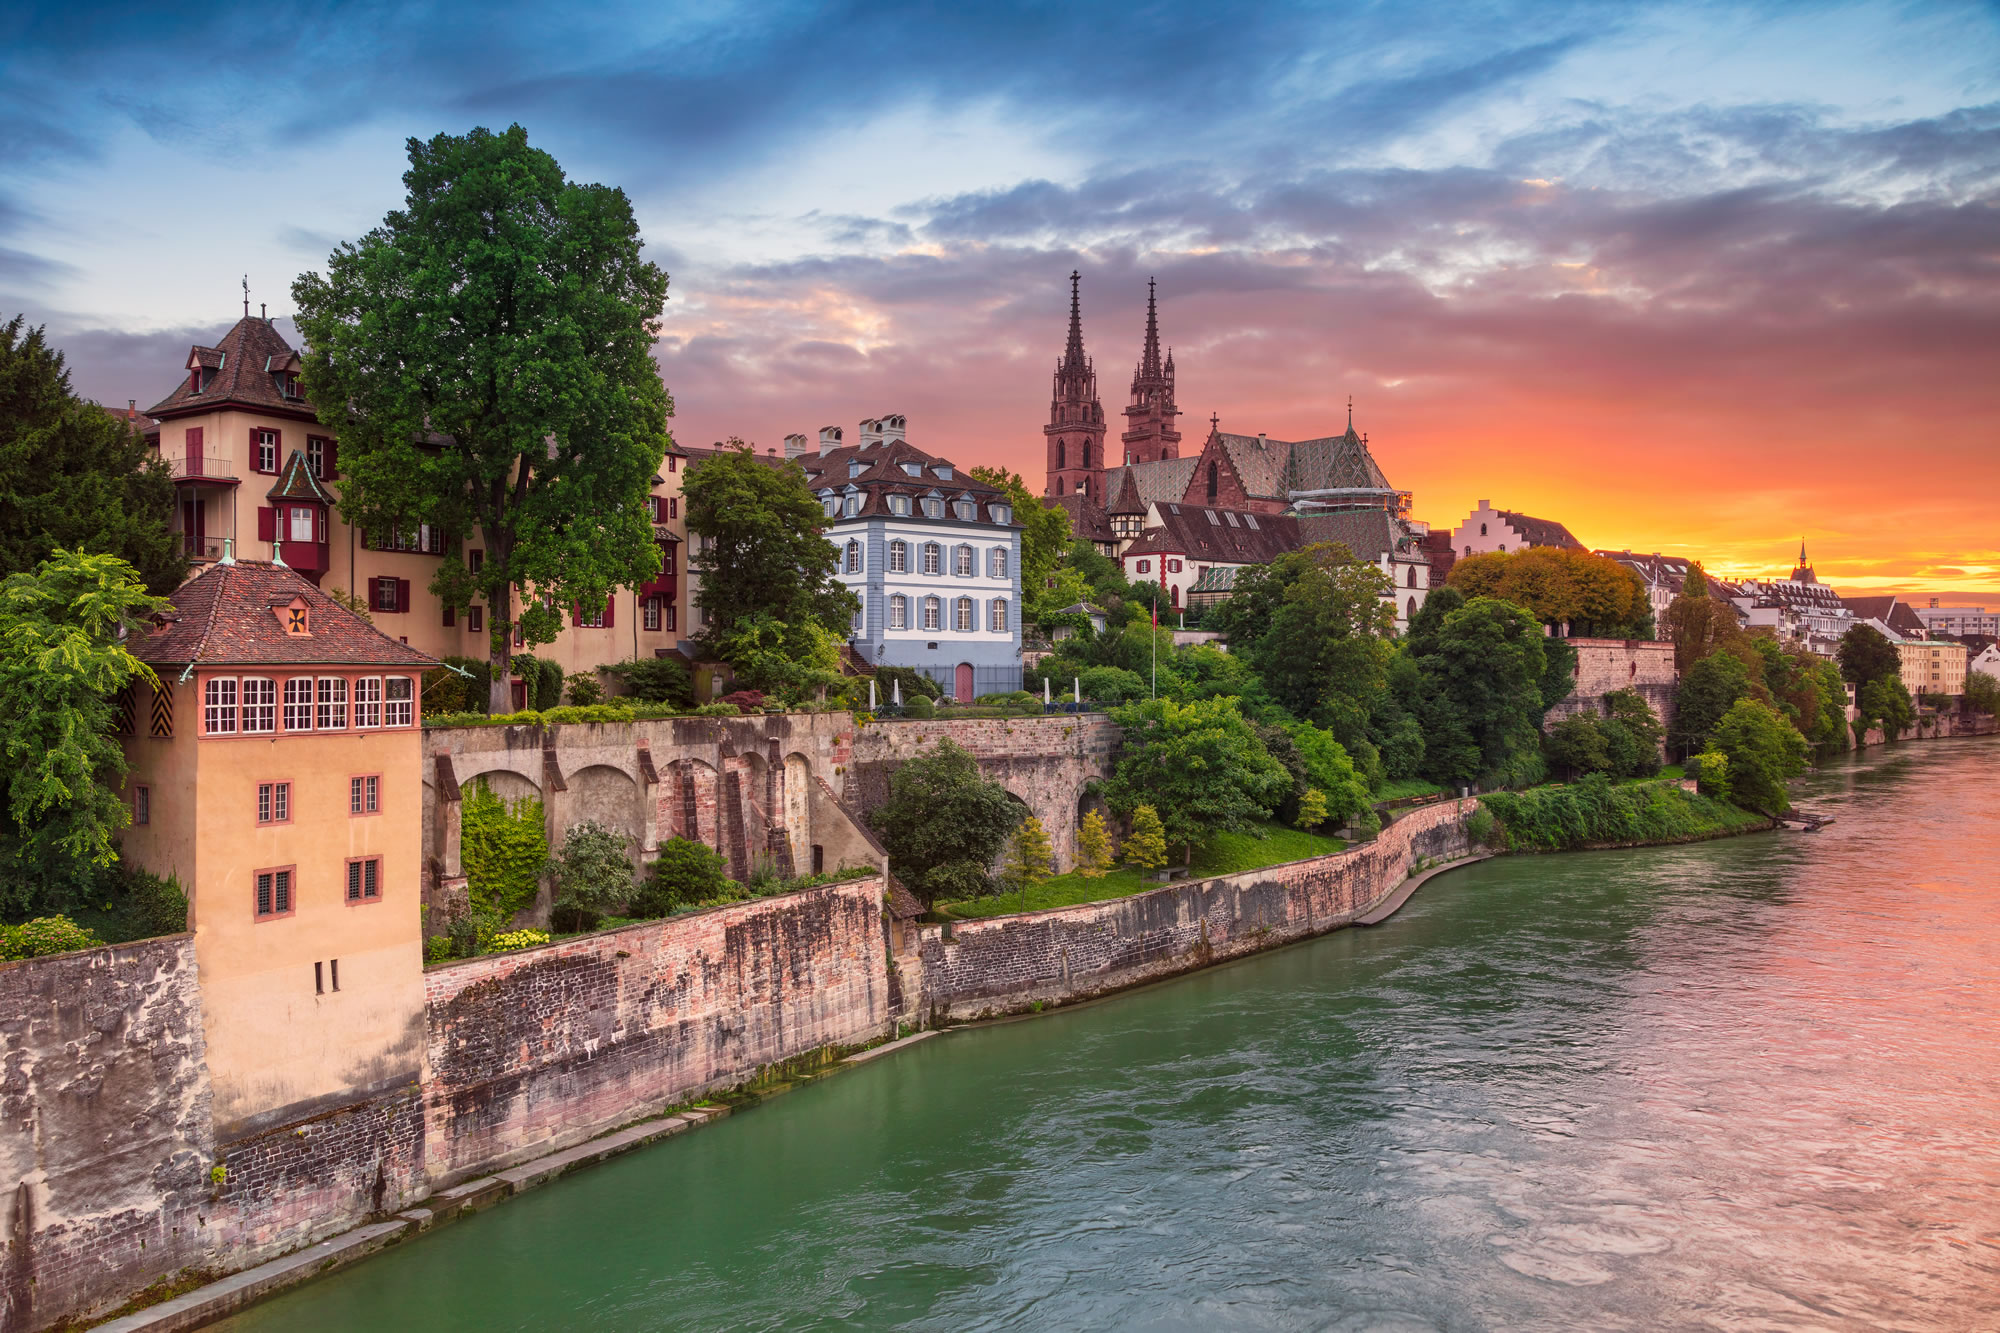 Cityscape Image of Basel, Switzerland